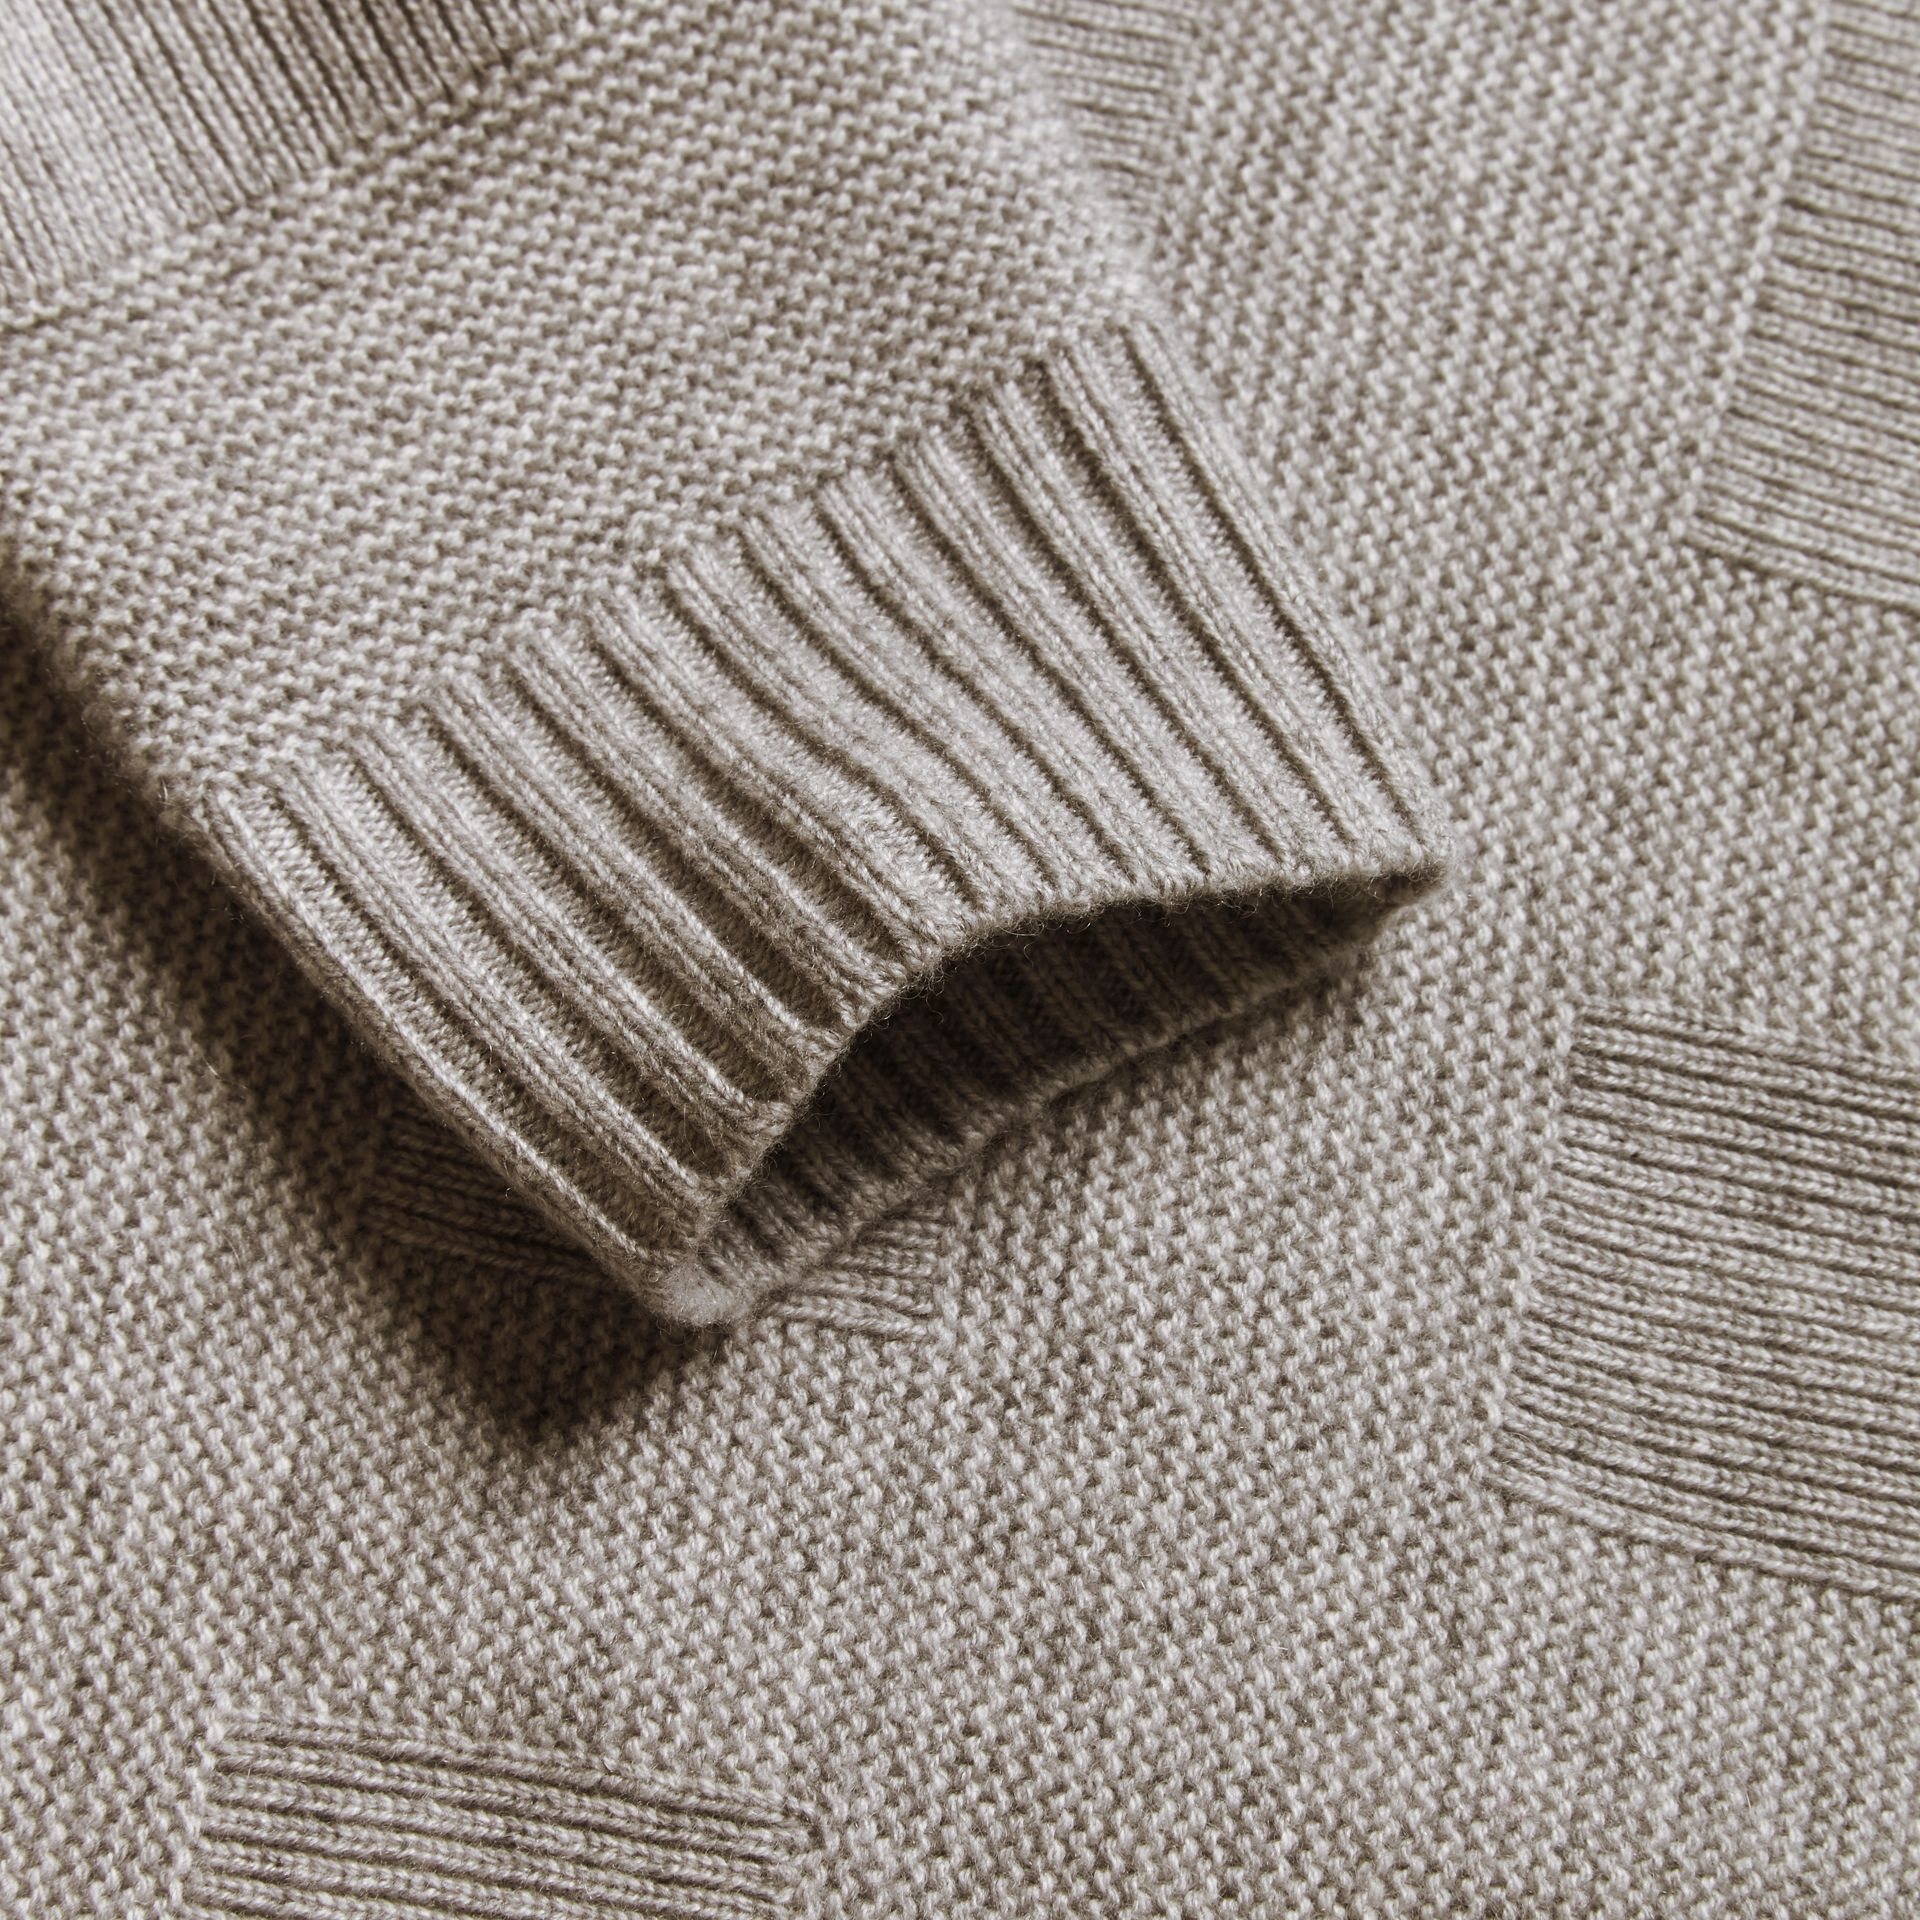 Light grey melange Check-knit Wool Cashmere Sweater Light Grey Melange - gallery image 2